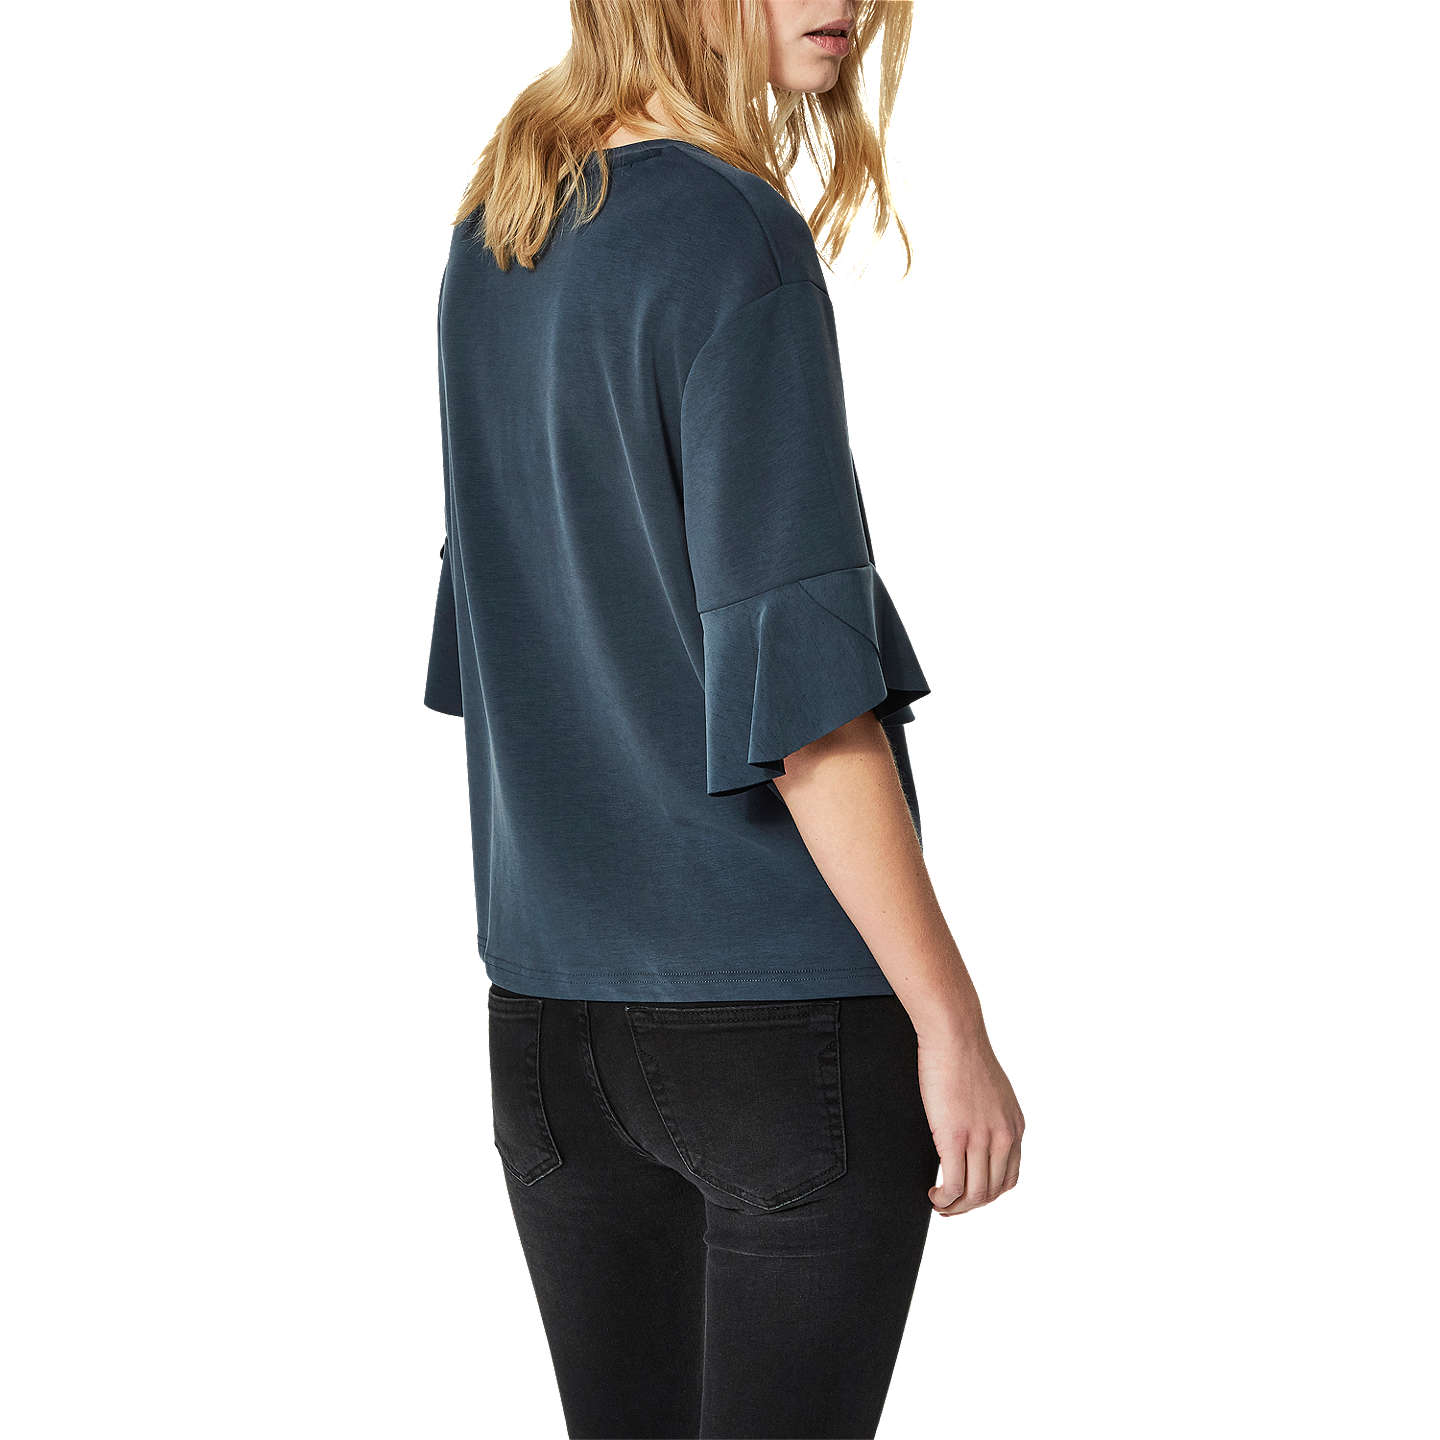 Selected Lizzy Ruffle Sleeve Top, Navy